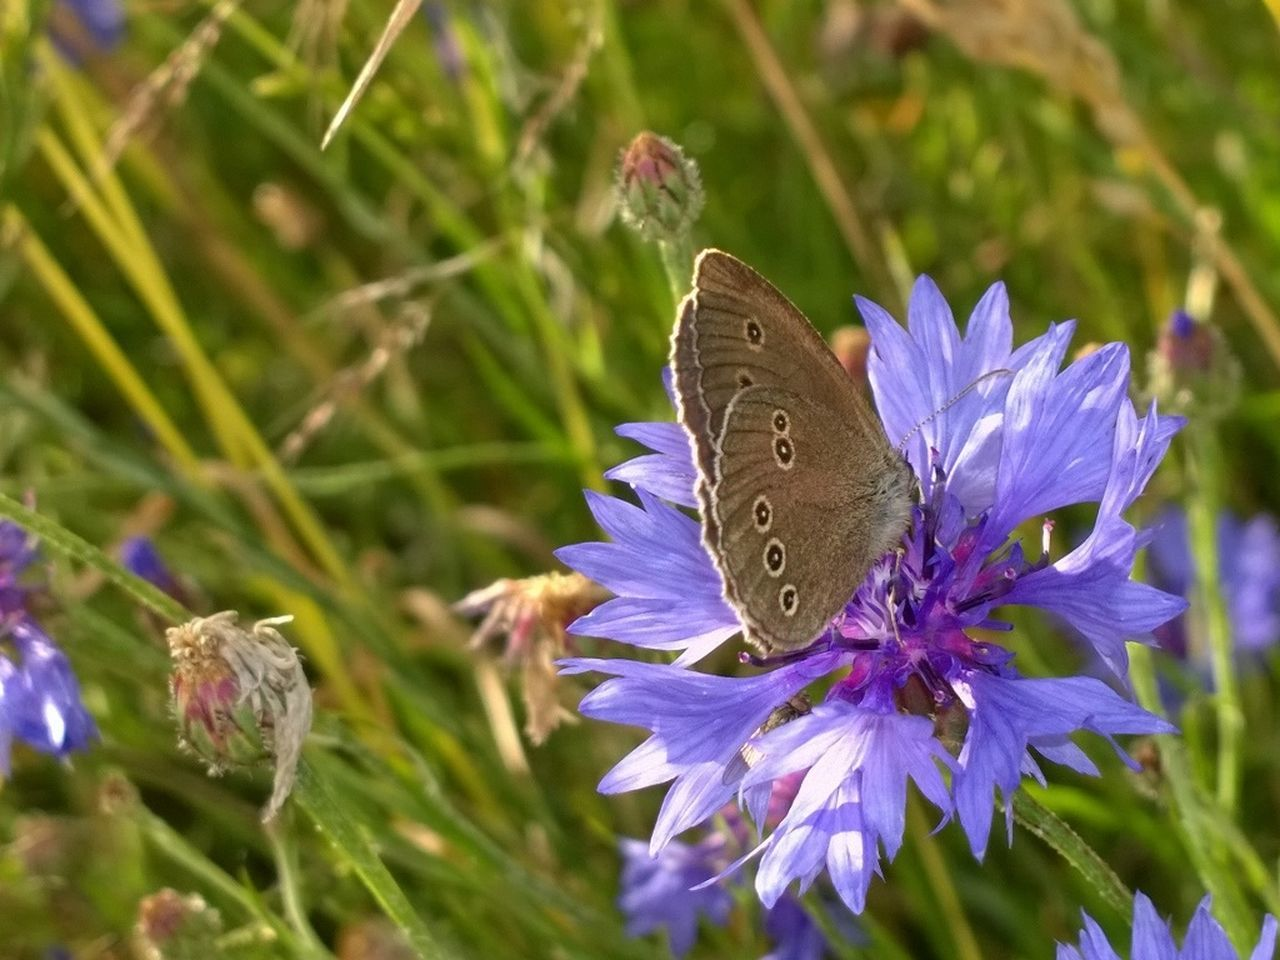 butterfly - insect, insect, one animal, animals in the wild, animal themes, fragility, nature, butterfly, growth, flower, beauty in nature, no people, outdoors, plant, close-up, day, animal wildlife, pollination, freshness, spread wings, flower head